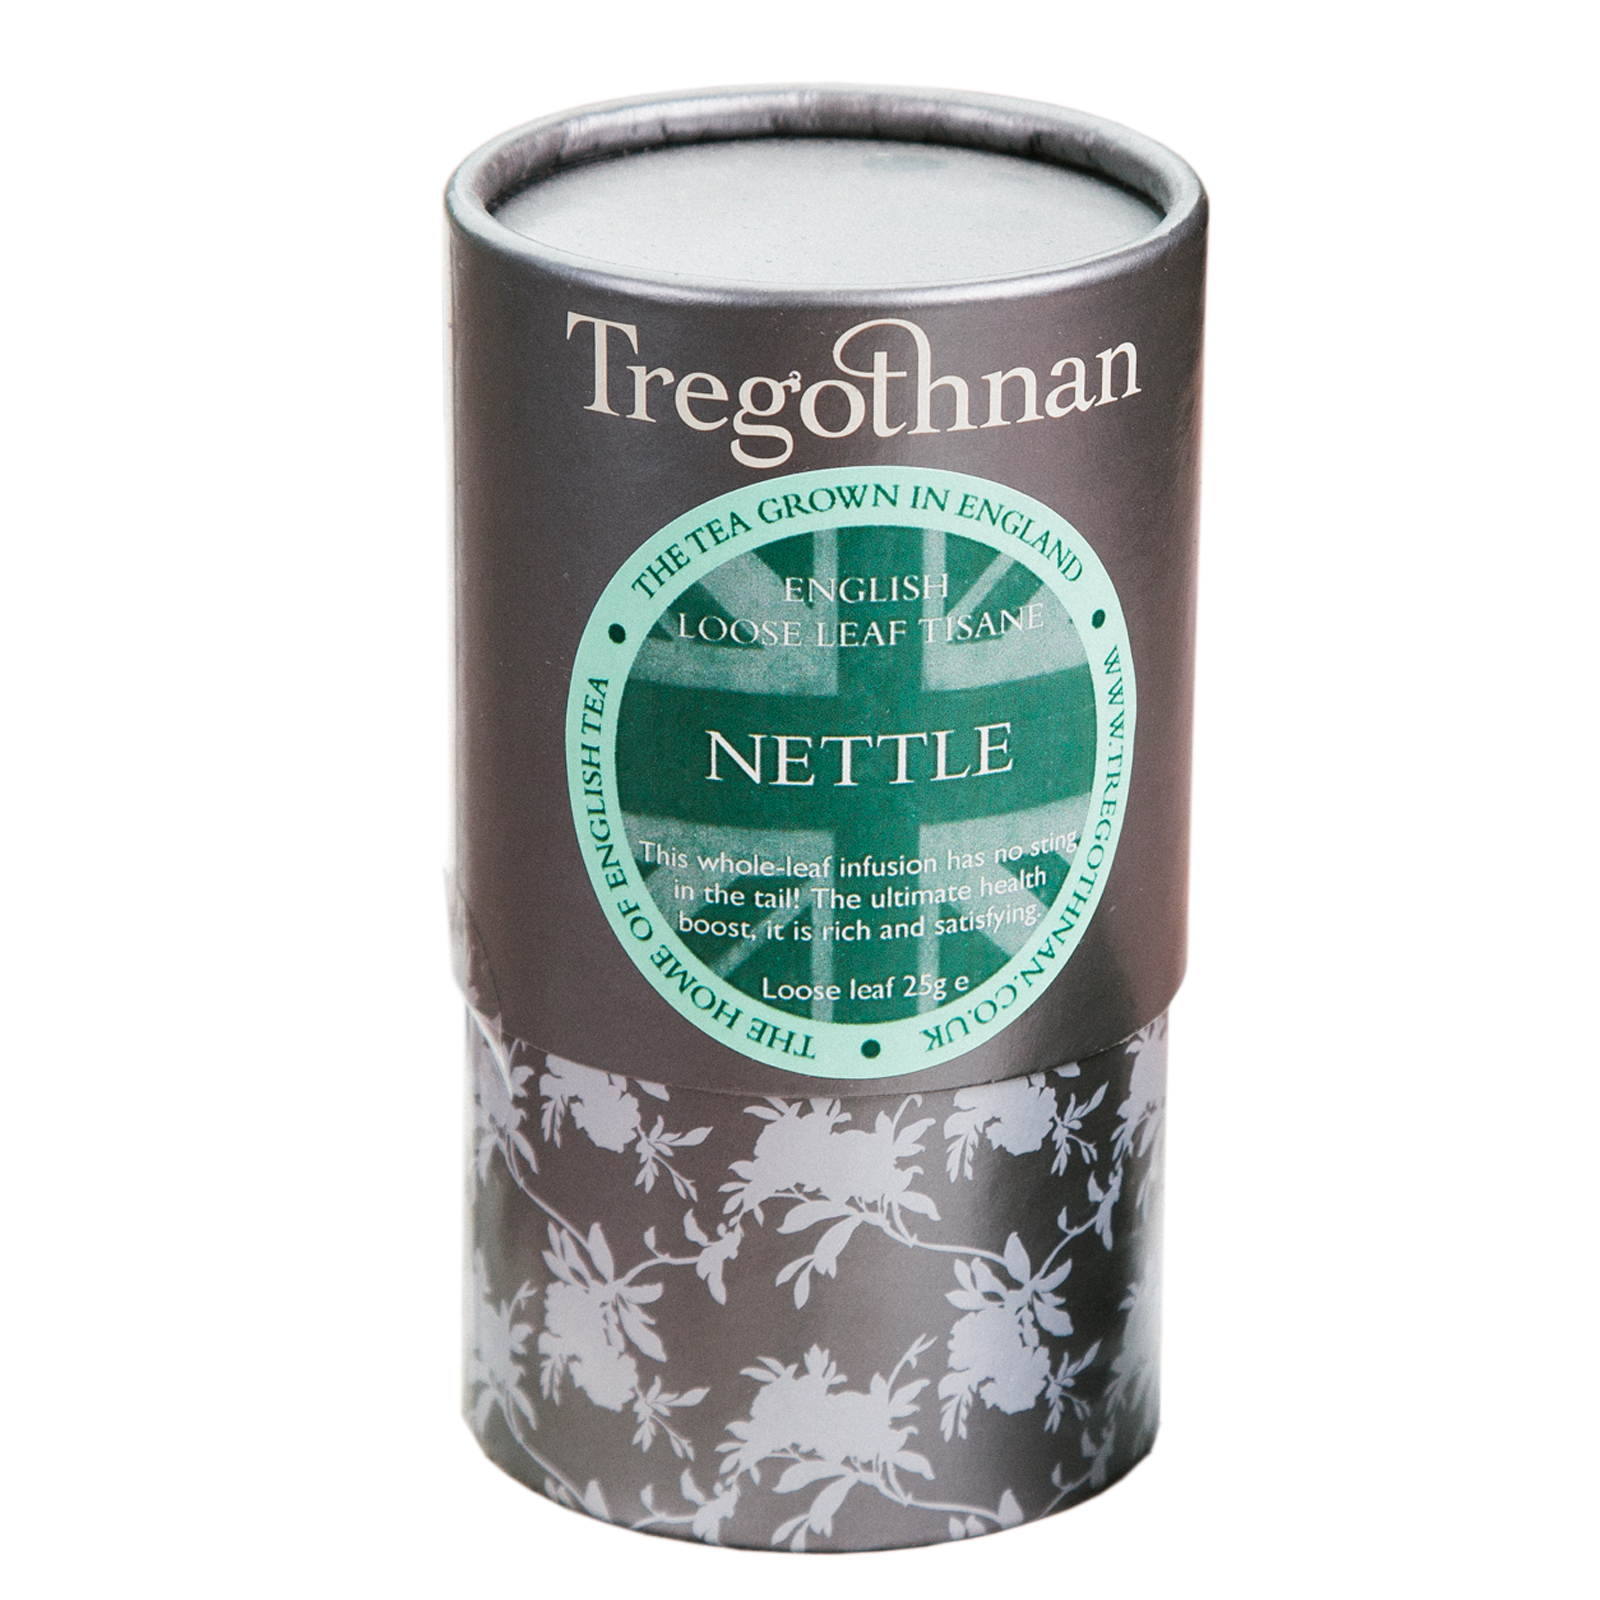 Tregothnan Nettle Loose Tea Caddy 25G